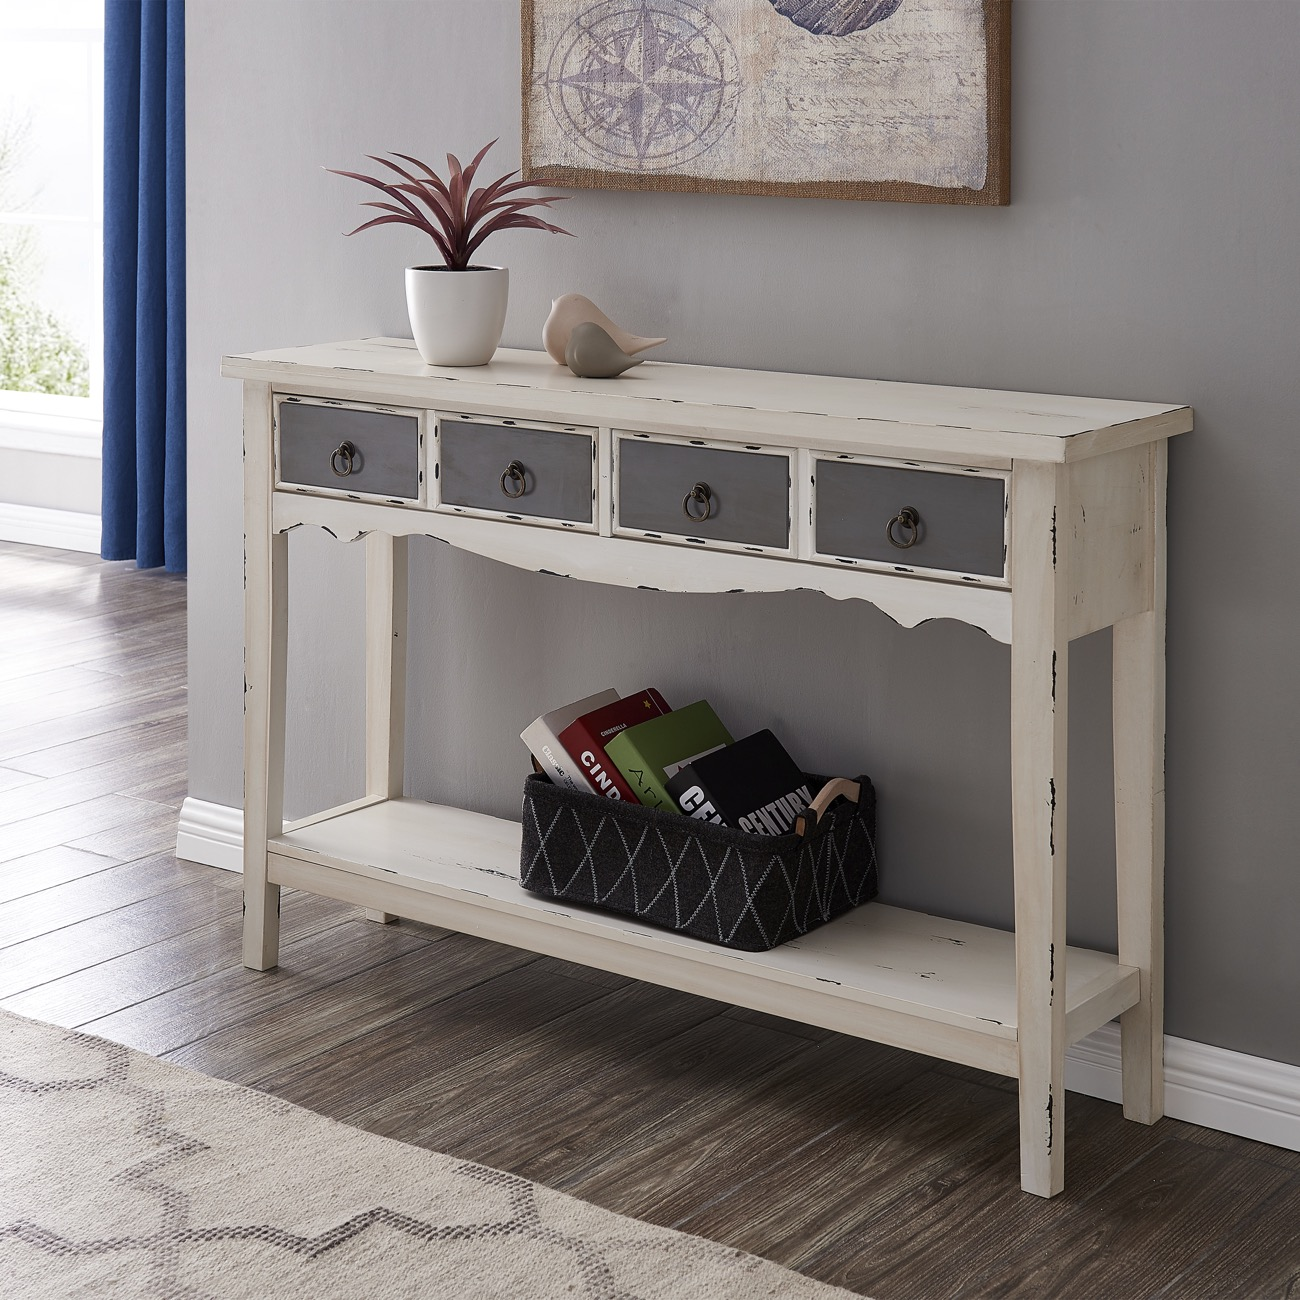 Details About Modern Two Tone Two Drawer Distressed Console Entryway Table Antique White